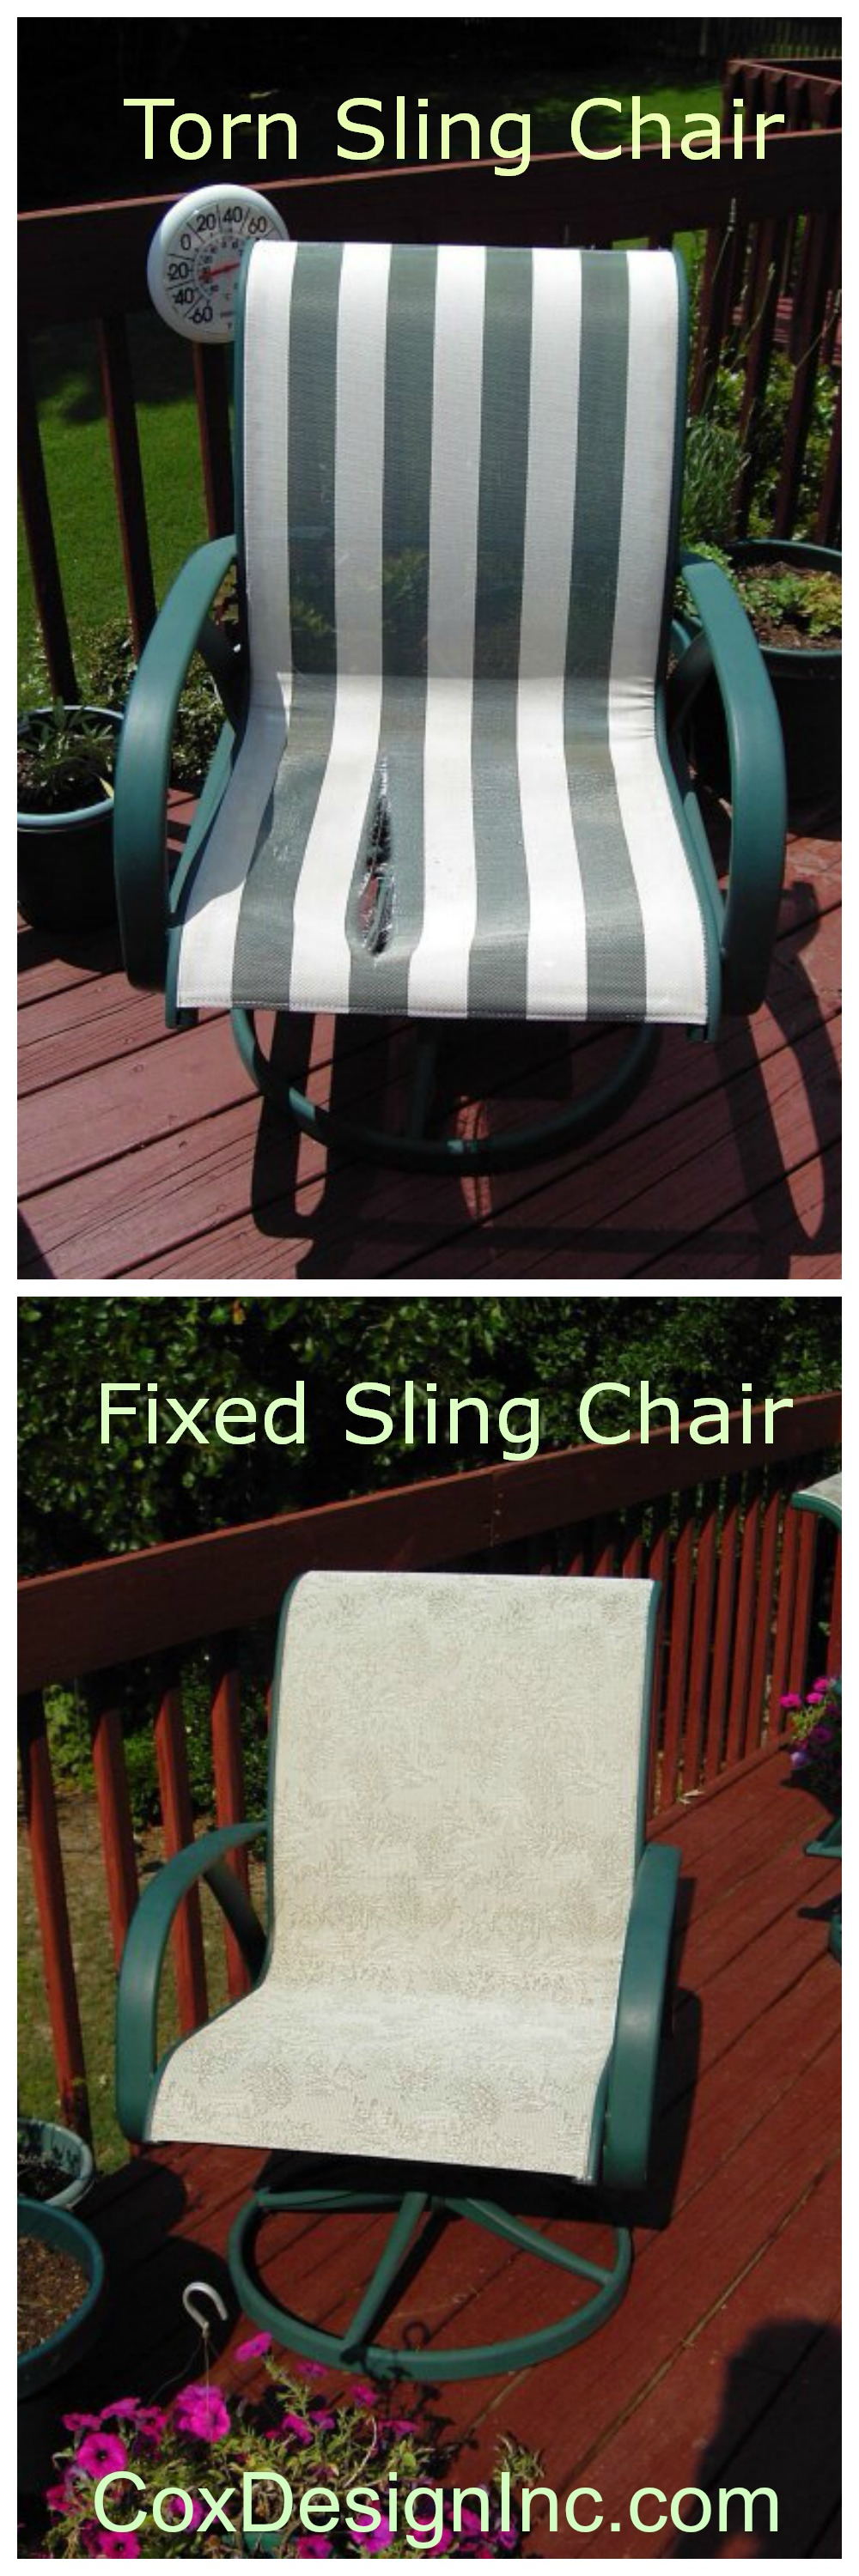 We Can Replace The Fabric In Sling Type Chairs To Make